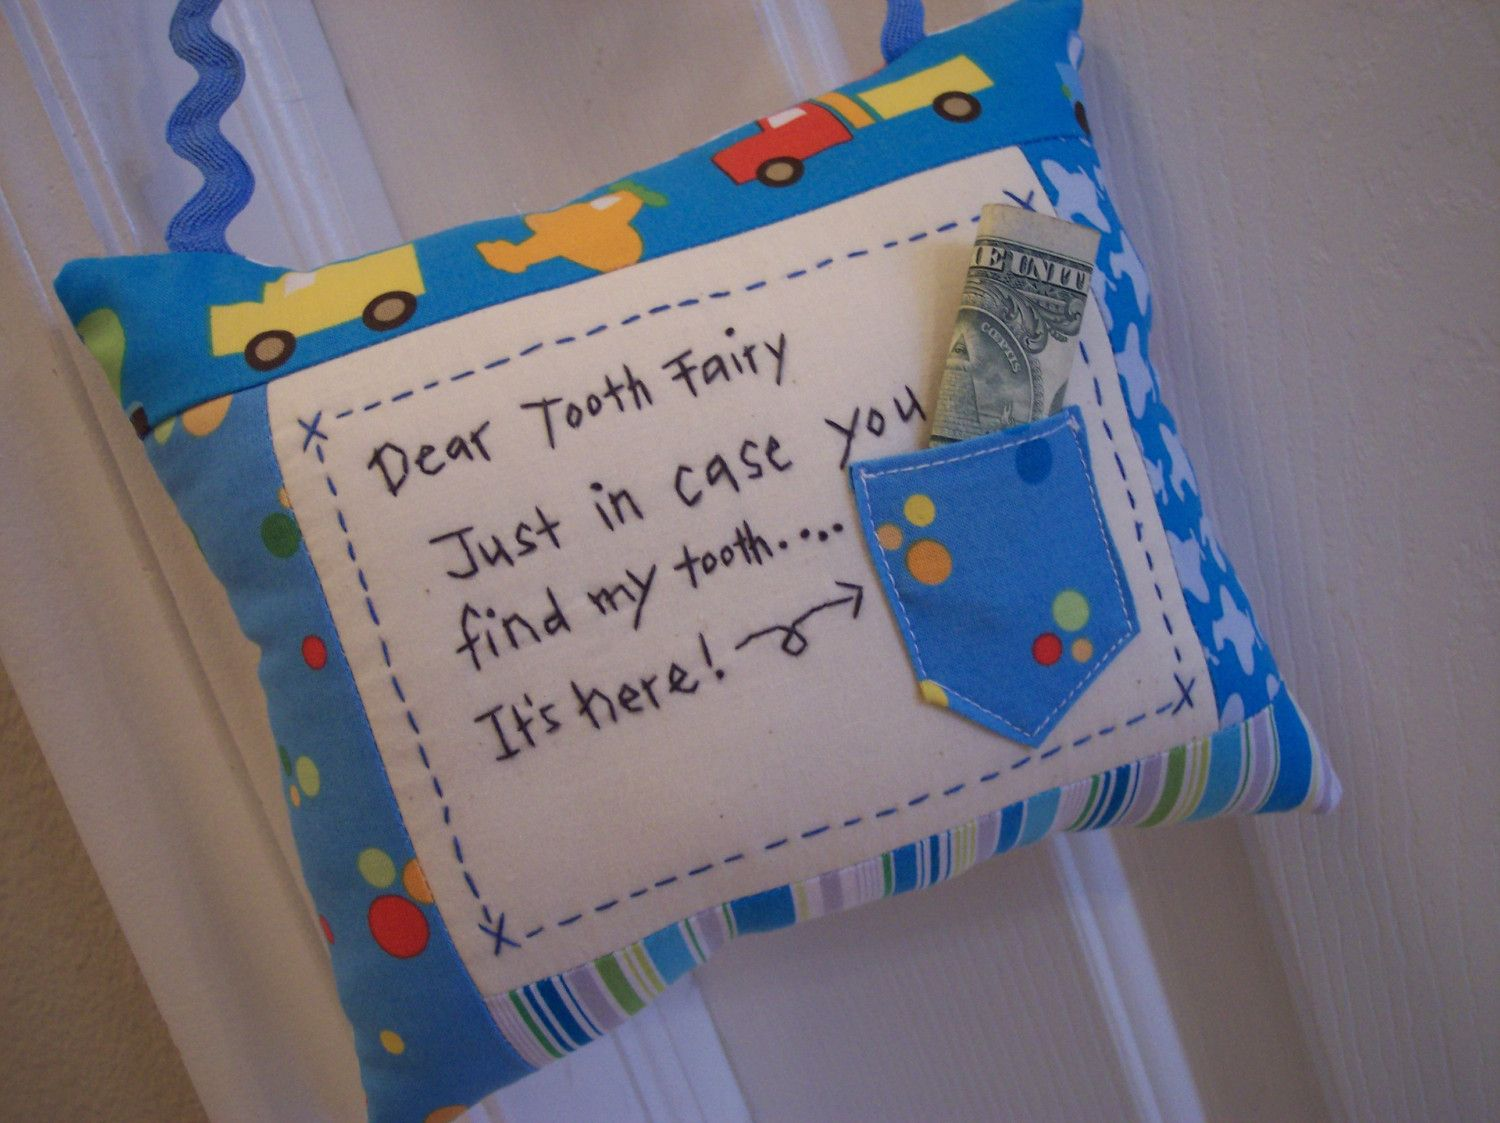 Blue Ivy Tooth Fairy